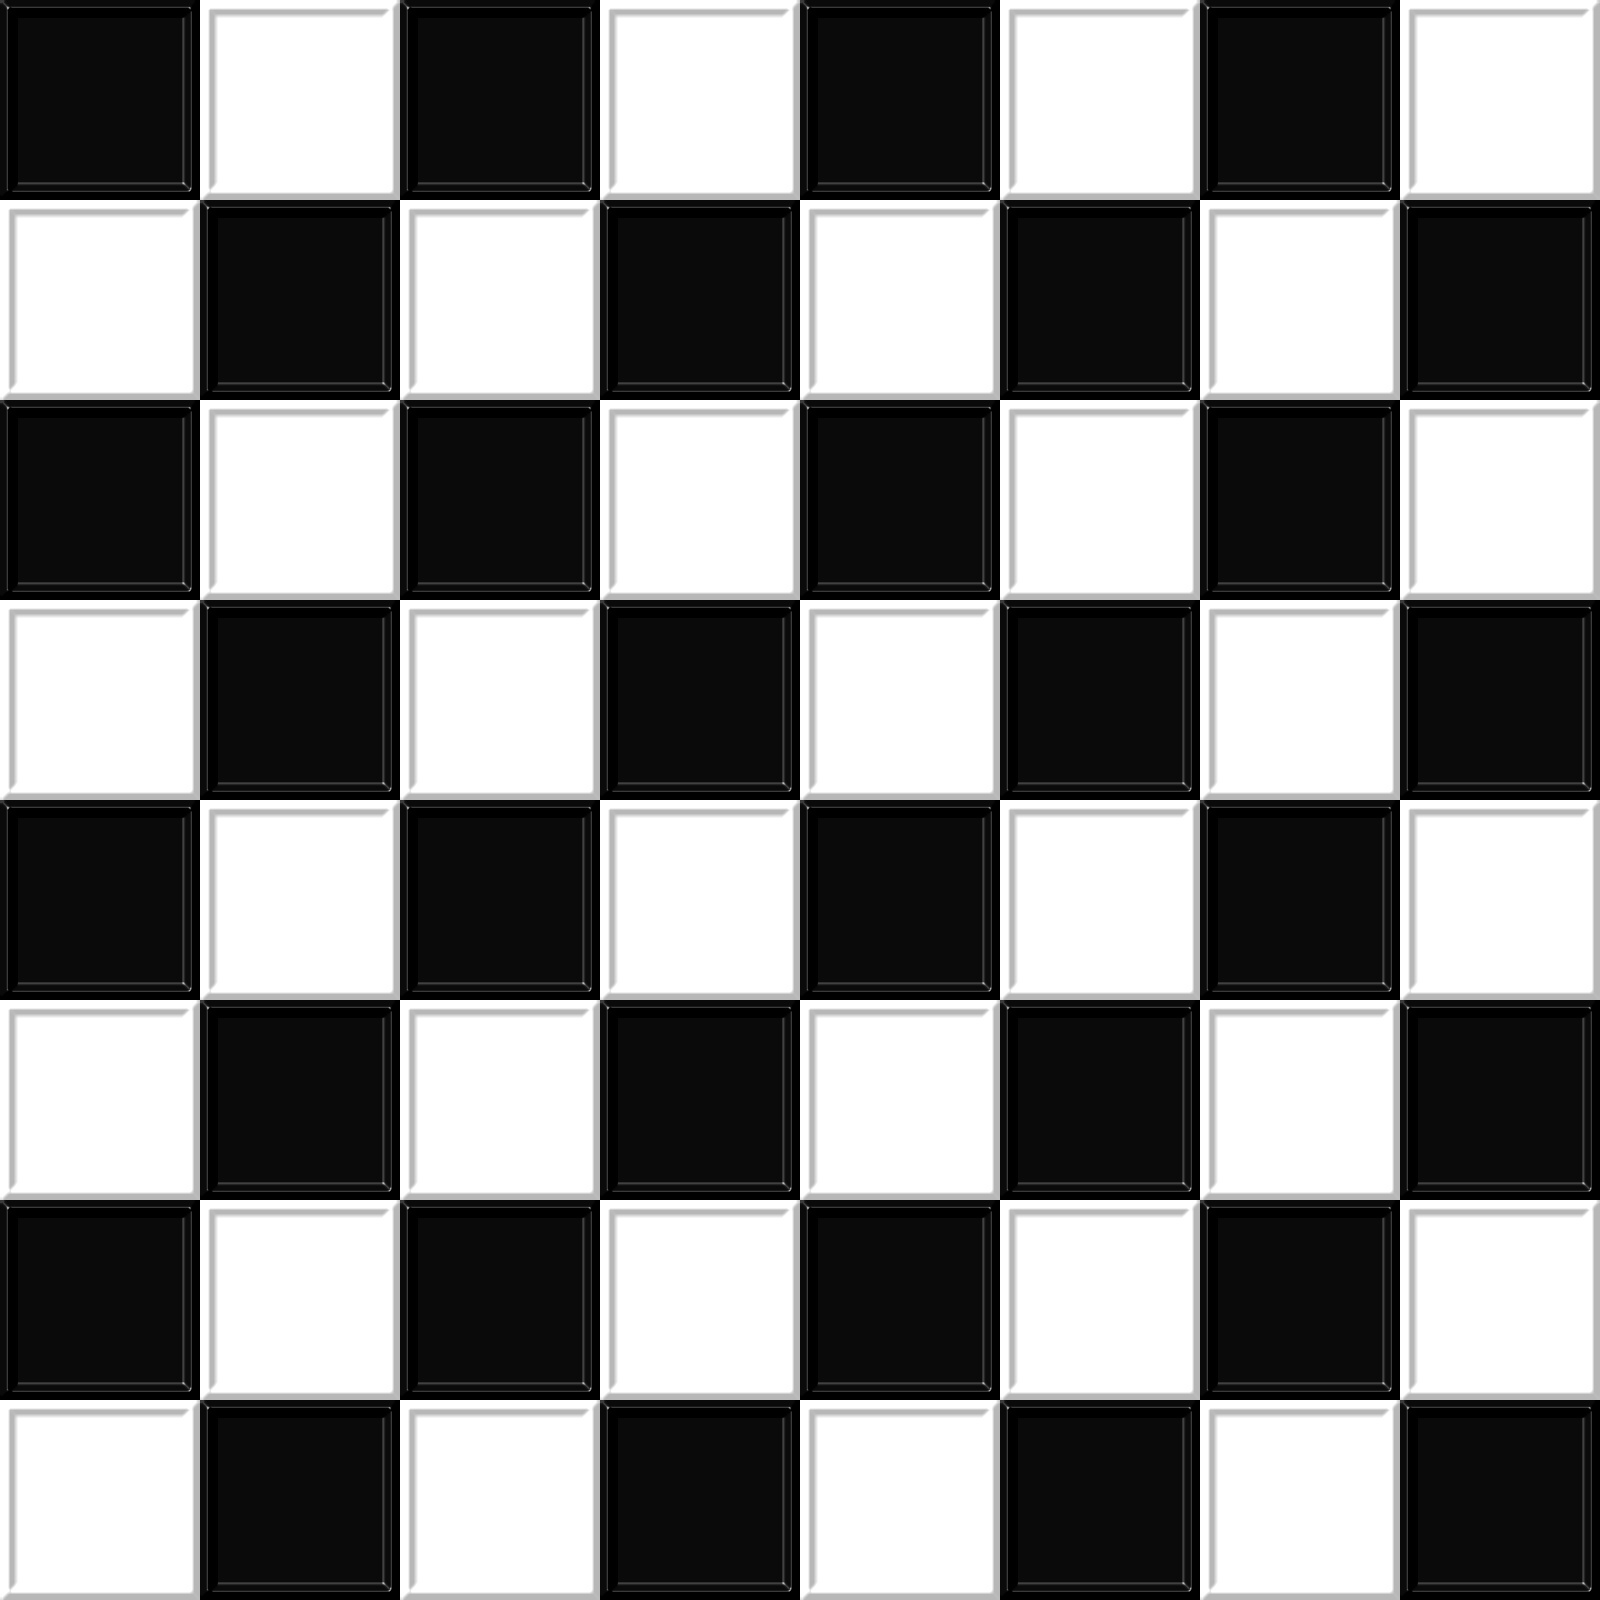 pow 2 checkerboard squares To count the total number of squares on a checkerboard, you have to  we can  conclude that there will be 52 4x4 squares, 62 3x3 squares,.